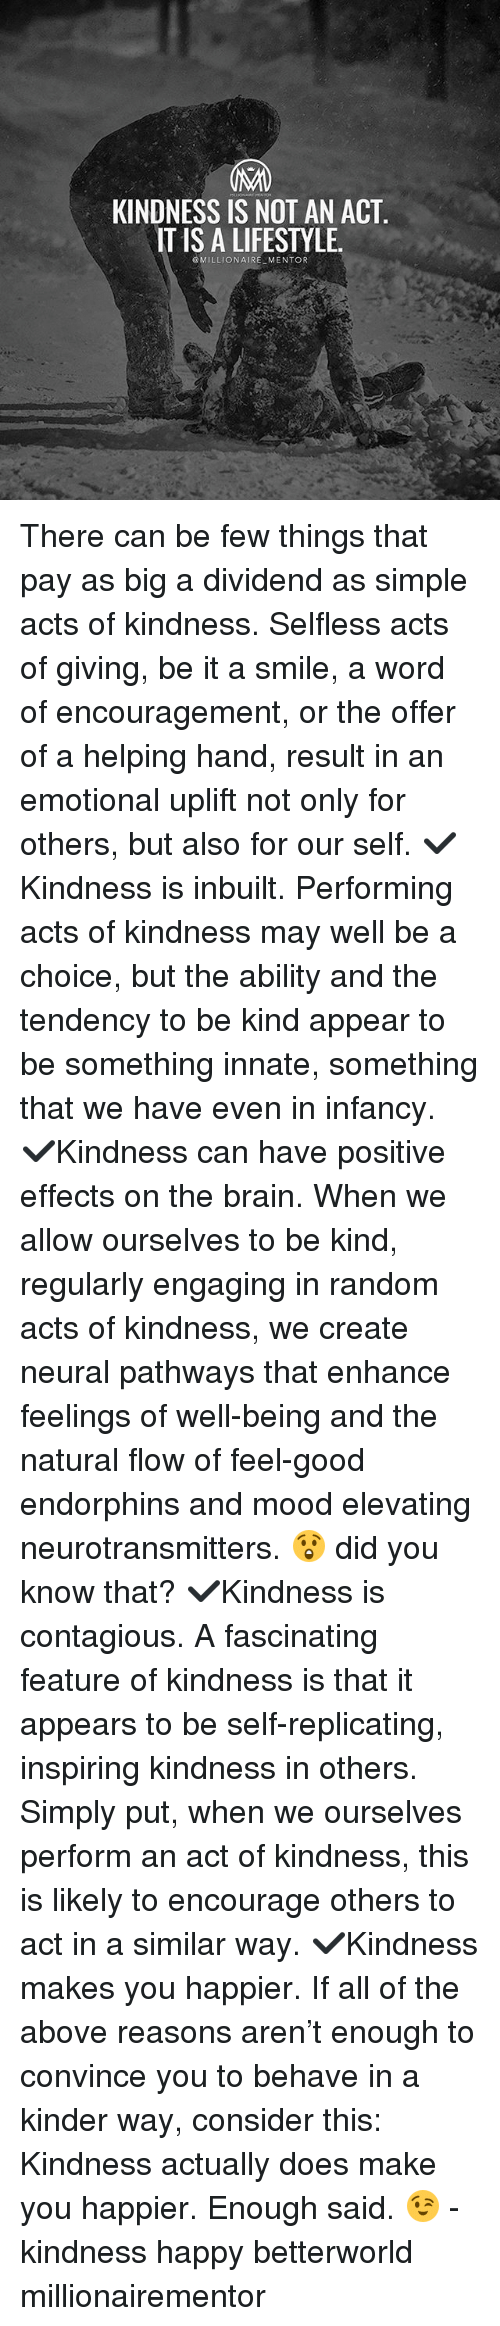 Memes, Mood, and Contagious: KINDNESS IS NOT AN ACT  IT IS A LIFESTYLE  OMILLIONAIRE MENTOR There can be few things that pay as big a dividend as simple acts of kindness. Selfless acts of giving, be it a smile, a word of encouragement, or the offer of a helping hand, result in an emotional uplift not only for others, but also for our self. ✔️Kindness is inbuilt. Performing acts of kindness may well be a choice, but the ability and the tendency to be kind appear to be something innate, something that we have even in infancy. ✔️Kindness can have positive effects on the brain. When we allow ourselves to be kind, regularly engaging in random acts of kindness, we create neural pathways that enhance feelings of well-being and the natural flow of feel-good endorphins and mood elevating neurotransmitters. 😲 did you know that? ✔️Kindness is contagious. A fascinating feature of kindness is that it appears to be self-replicating, inspiring kindness in others. Simply put, when we ourselves perform an act of kindness, this is likely to encourage others to act in a similar way. ✔️Kindness makes you happier. If all of the above reasons aren't enough to convince you to behave in a kinder way, consider this: Kindness actually does make you happier. Enough said. 😉 - kindness happy betterworld millionairementor